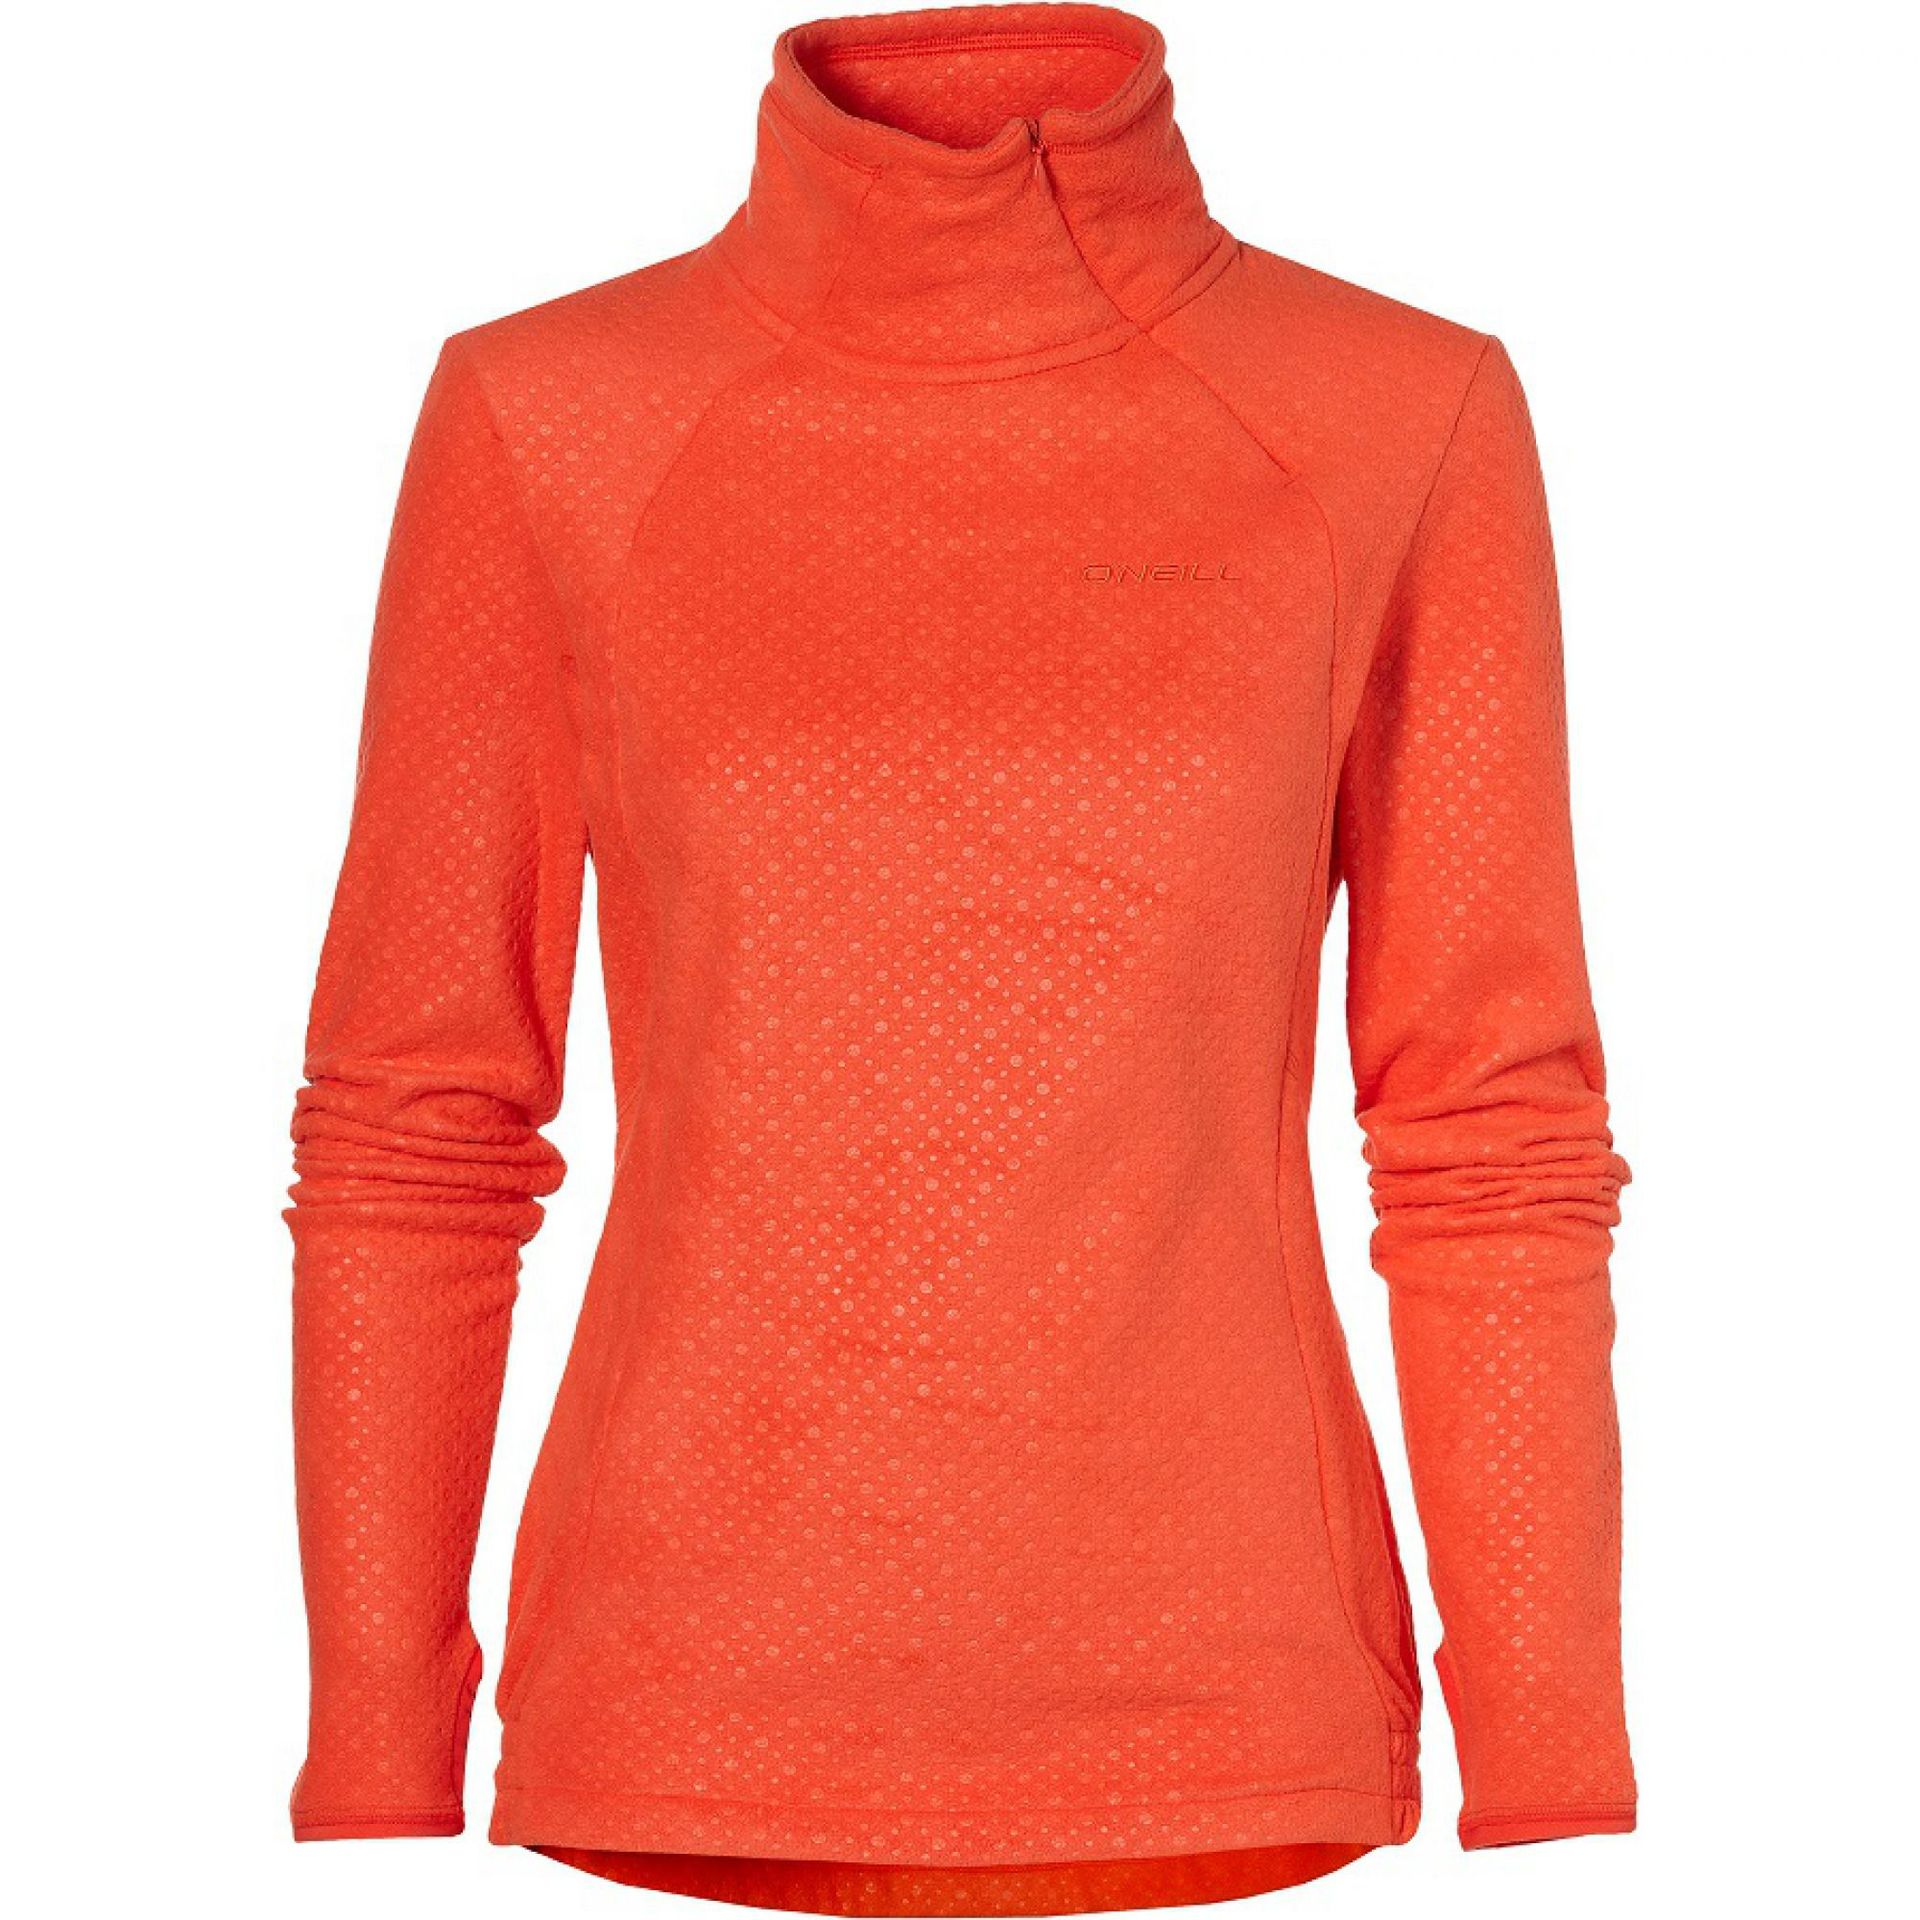 DAMSKA BLUZA ONEILL FULL ZIP FLEECE